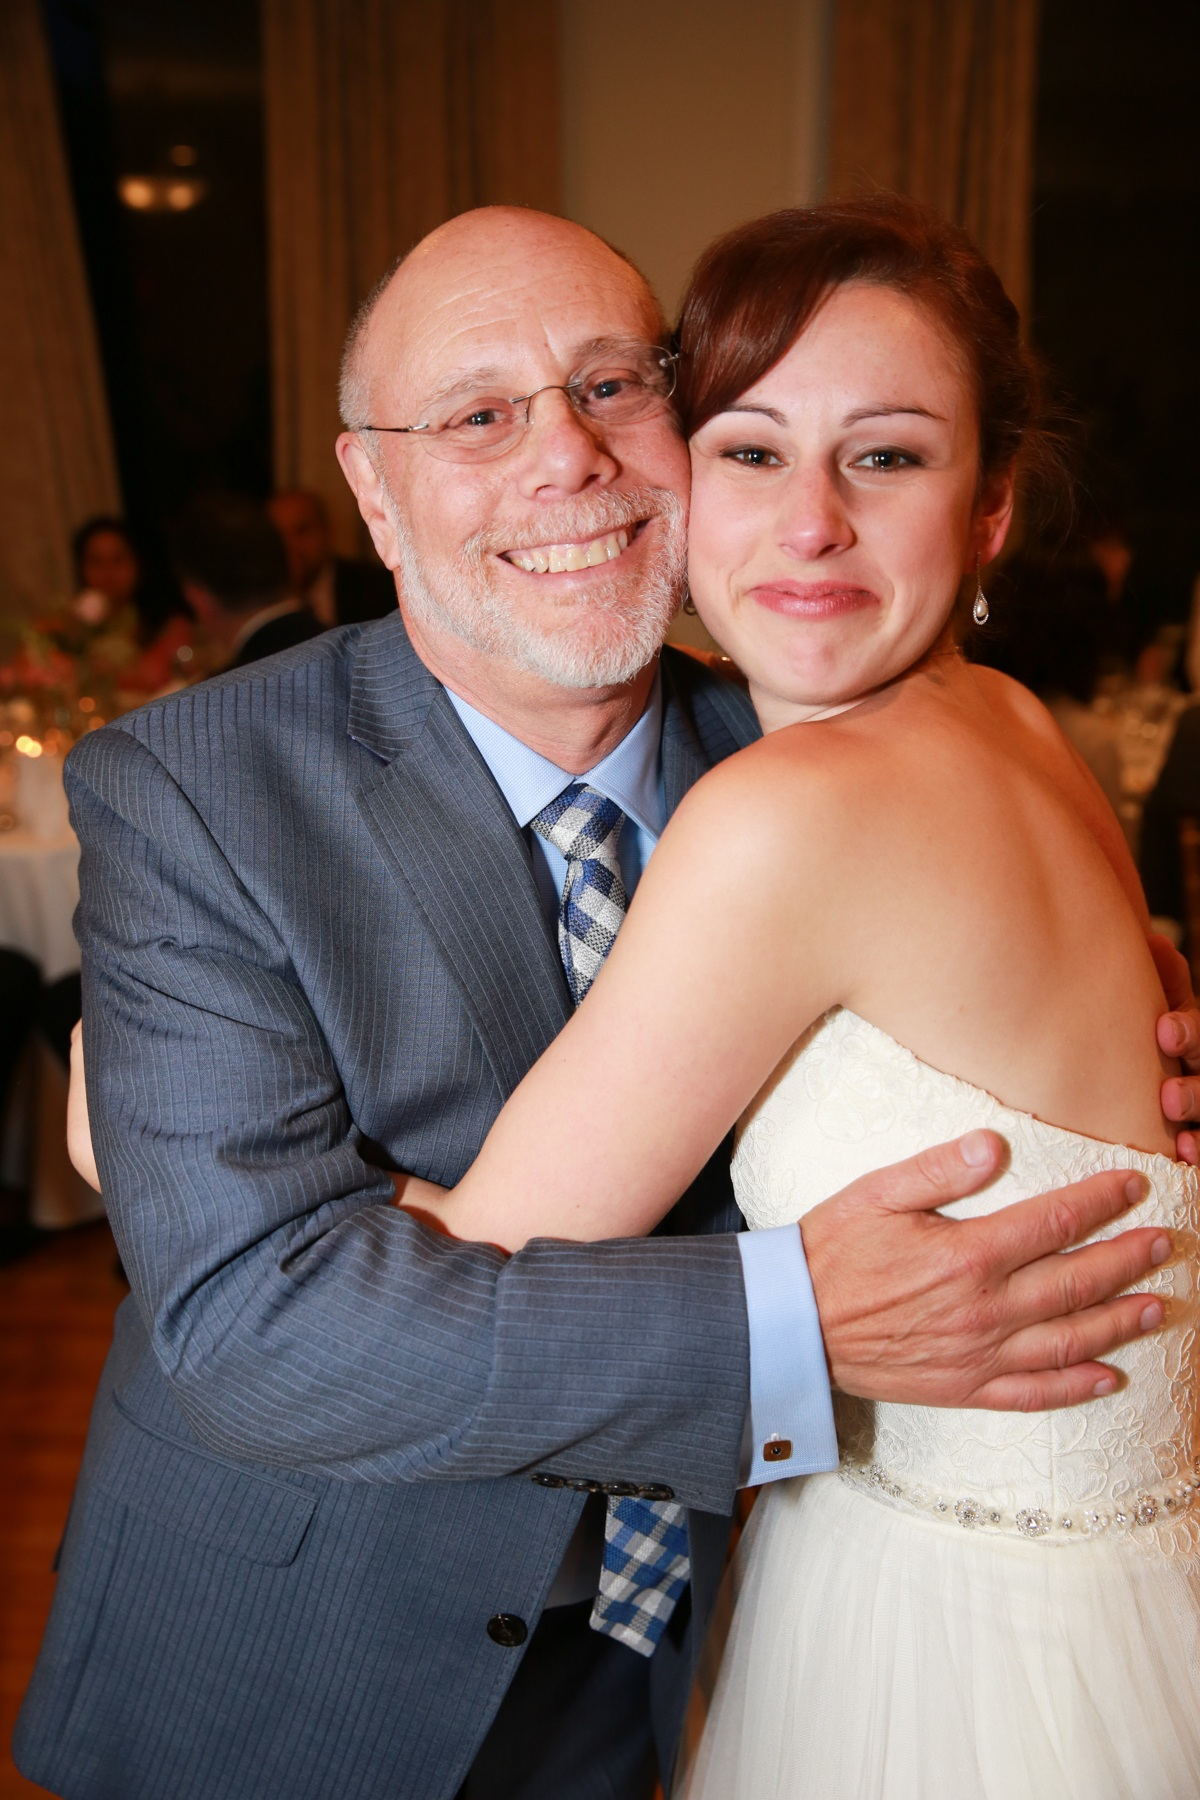 Father+and+Daughter+Dance+wedding+by+Aperture+Photography.jpg